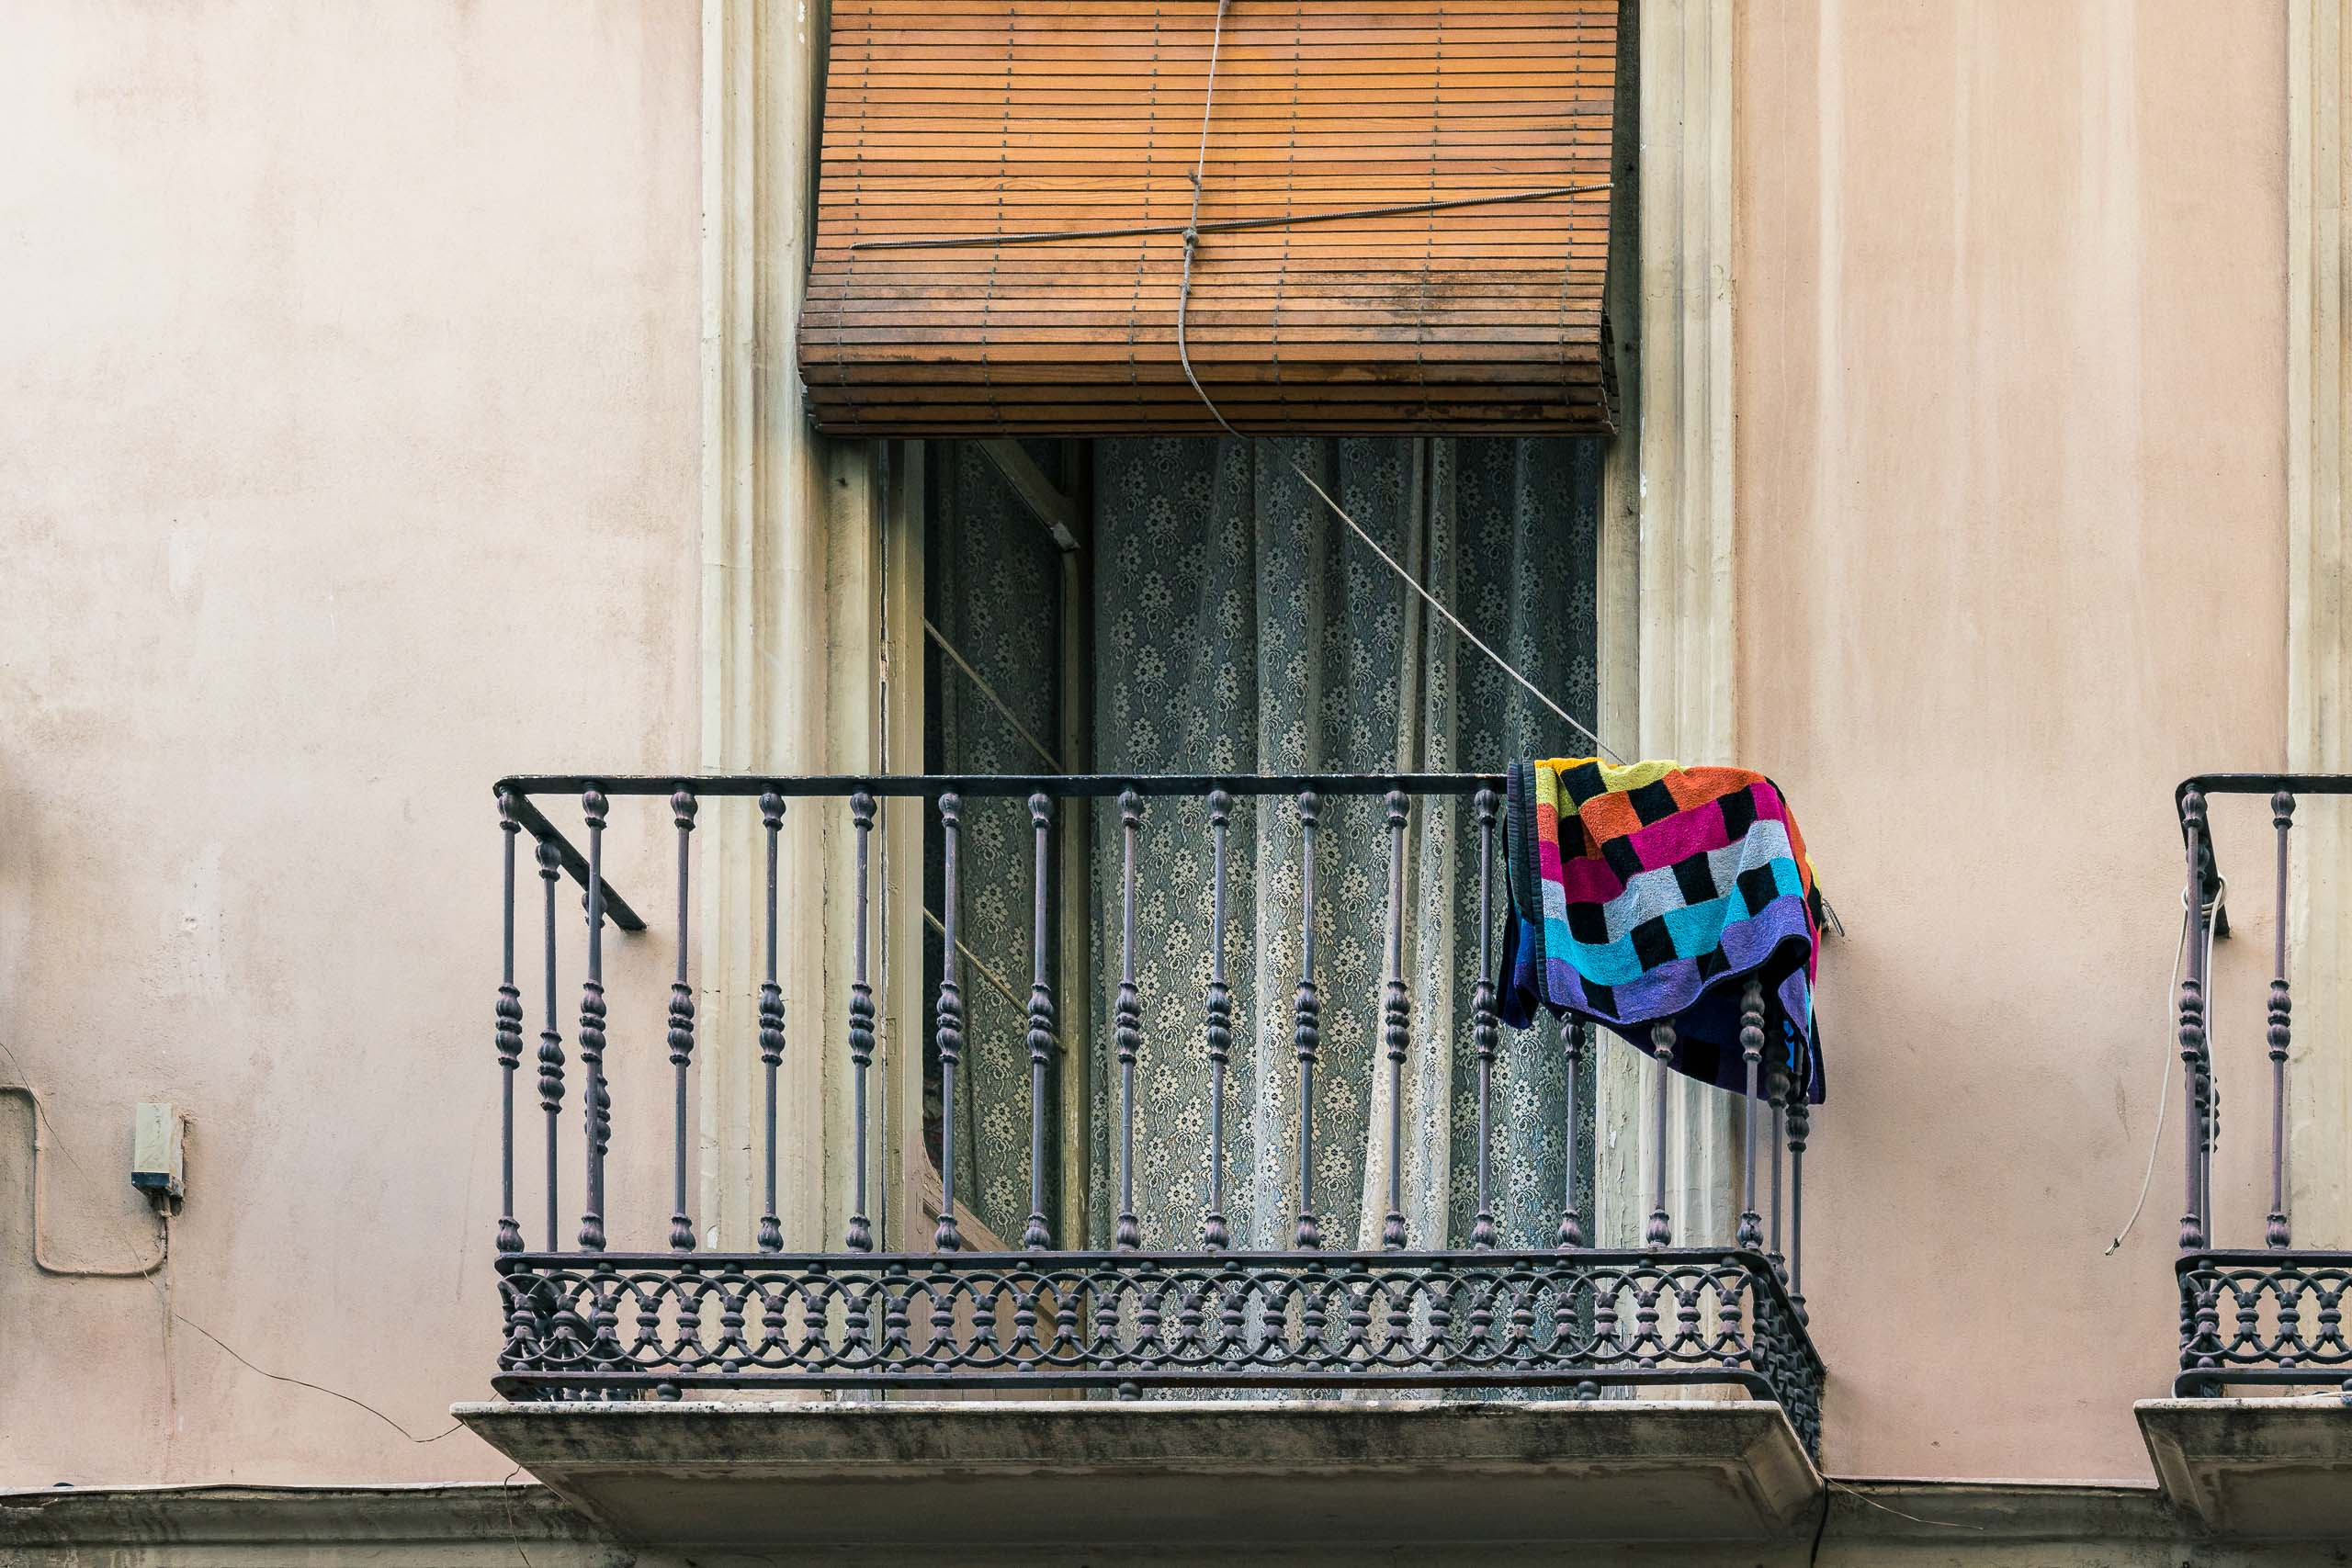 Travel and street photography of Malaga, Andalusia on Spain's Costa del Sol made by New York photographer Mary Catherine Messner (mcmessner).